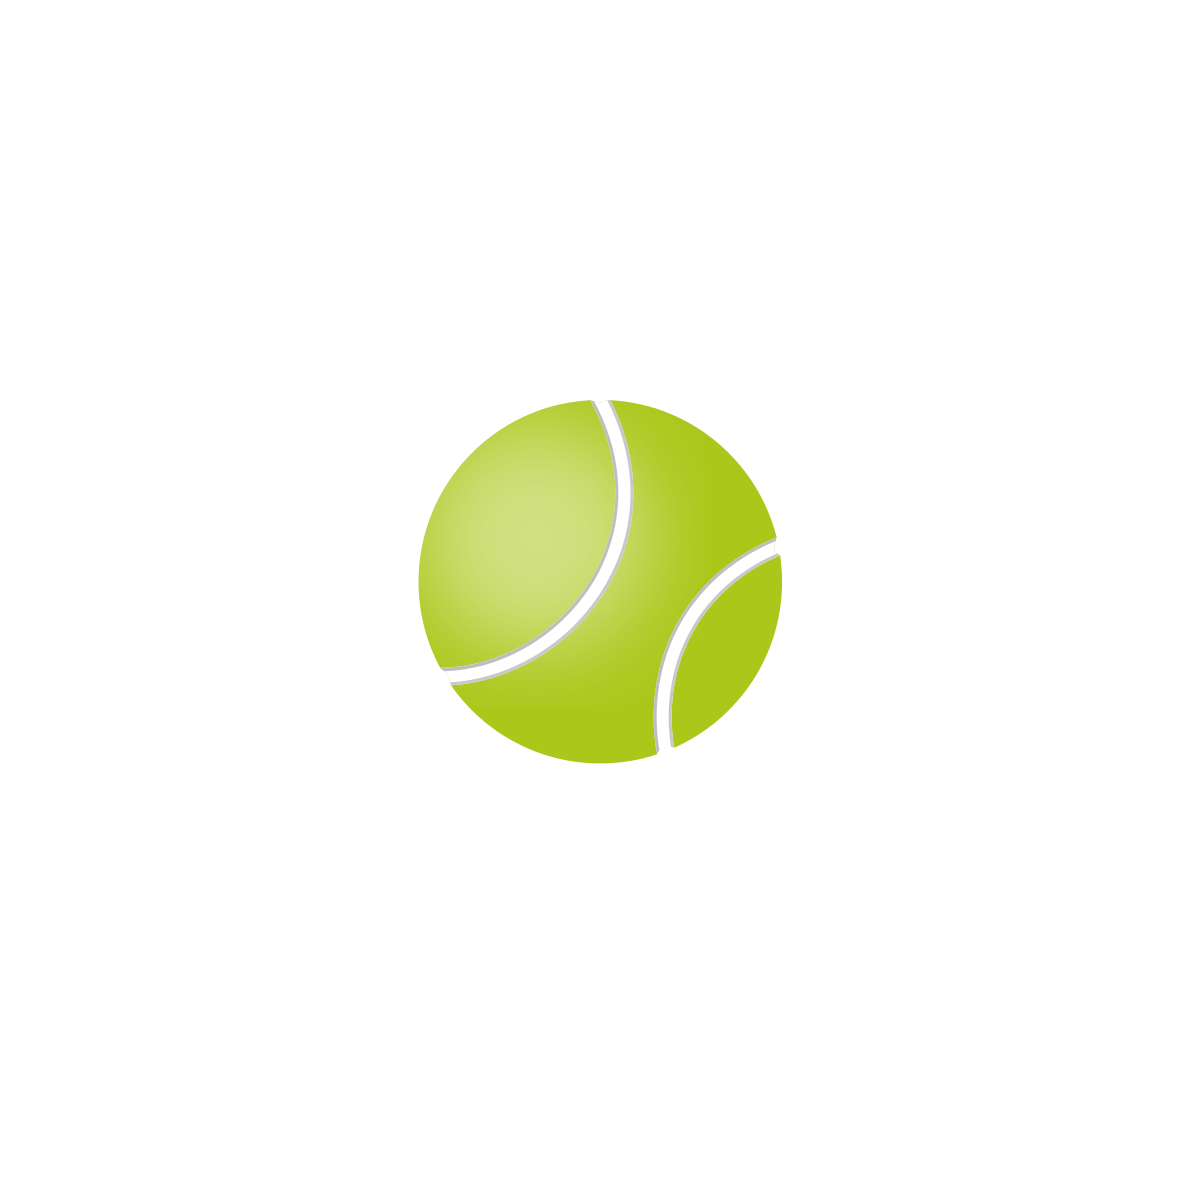 Sport clipart clear background. Tennis icon web icons